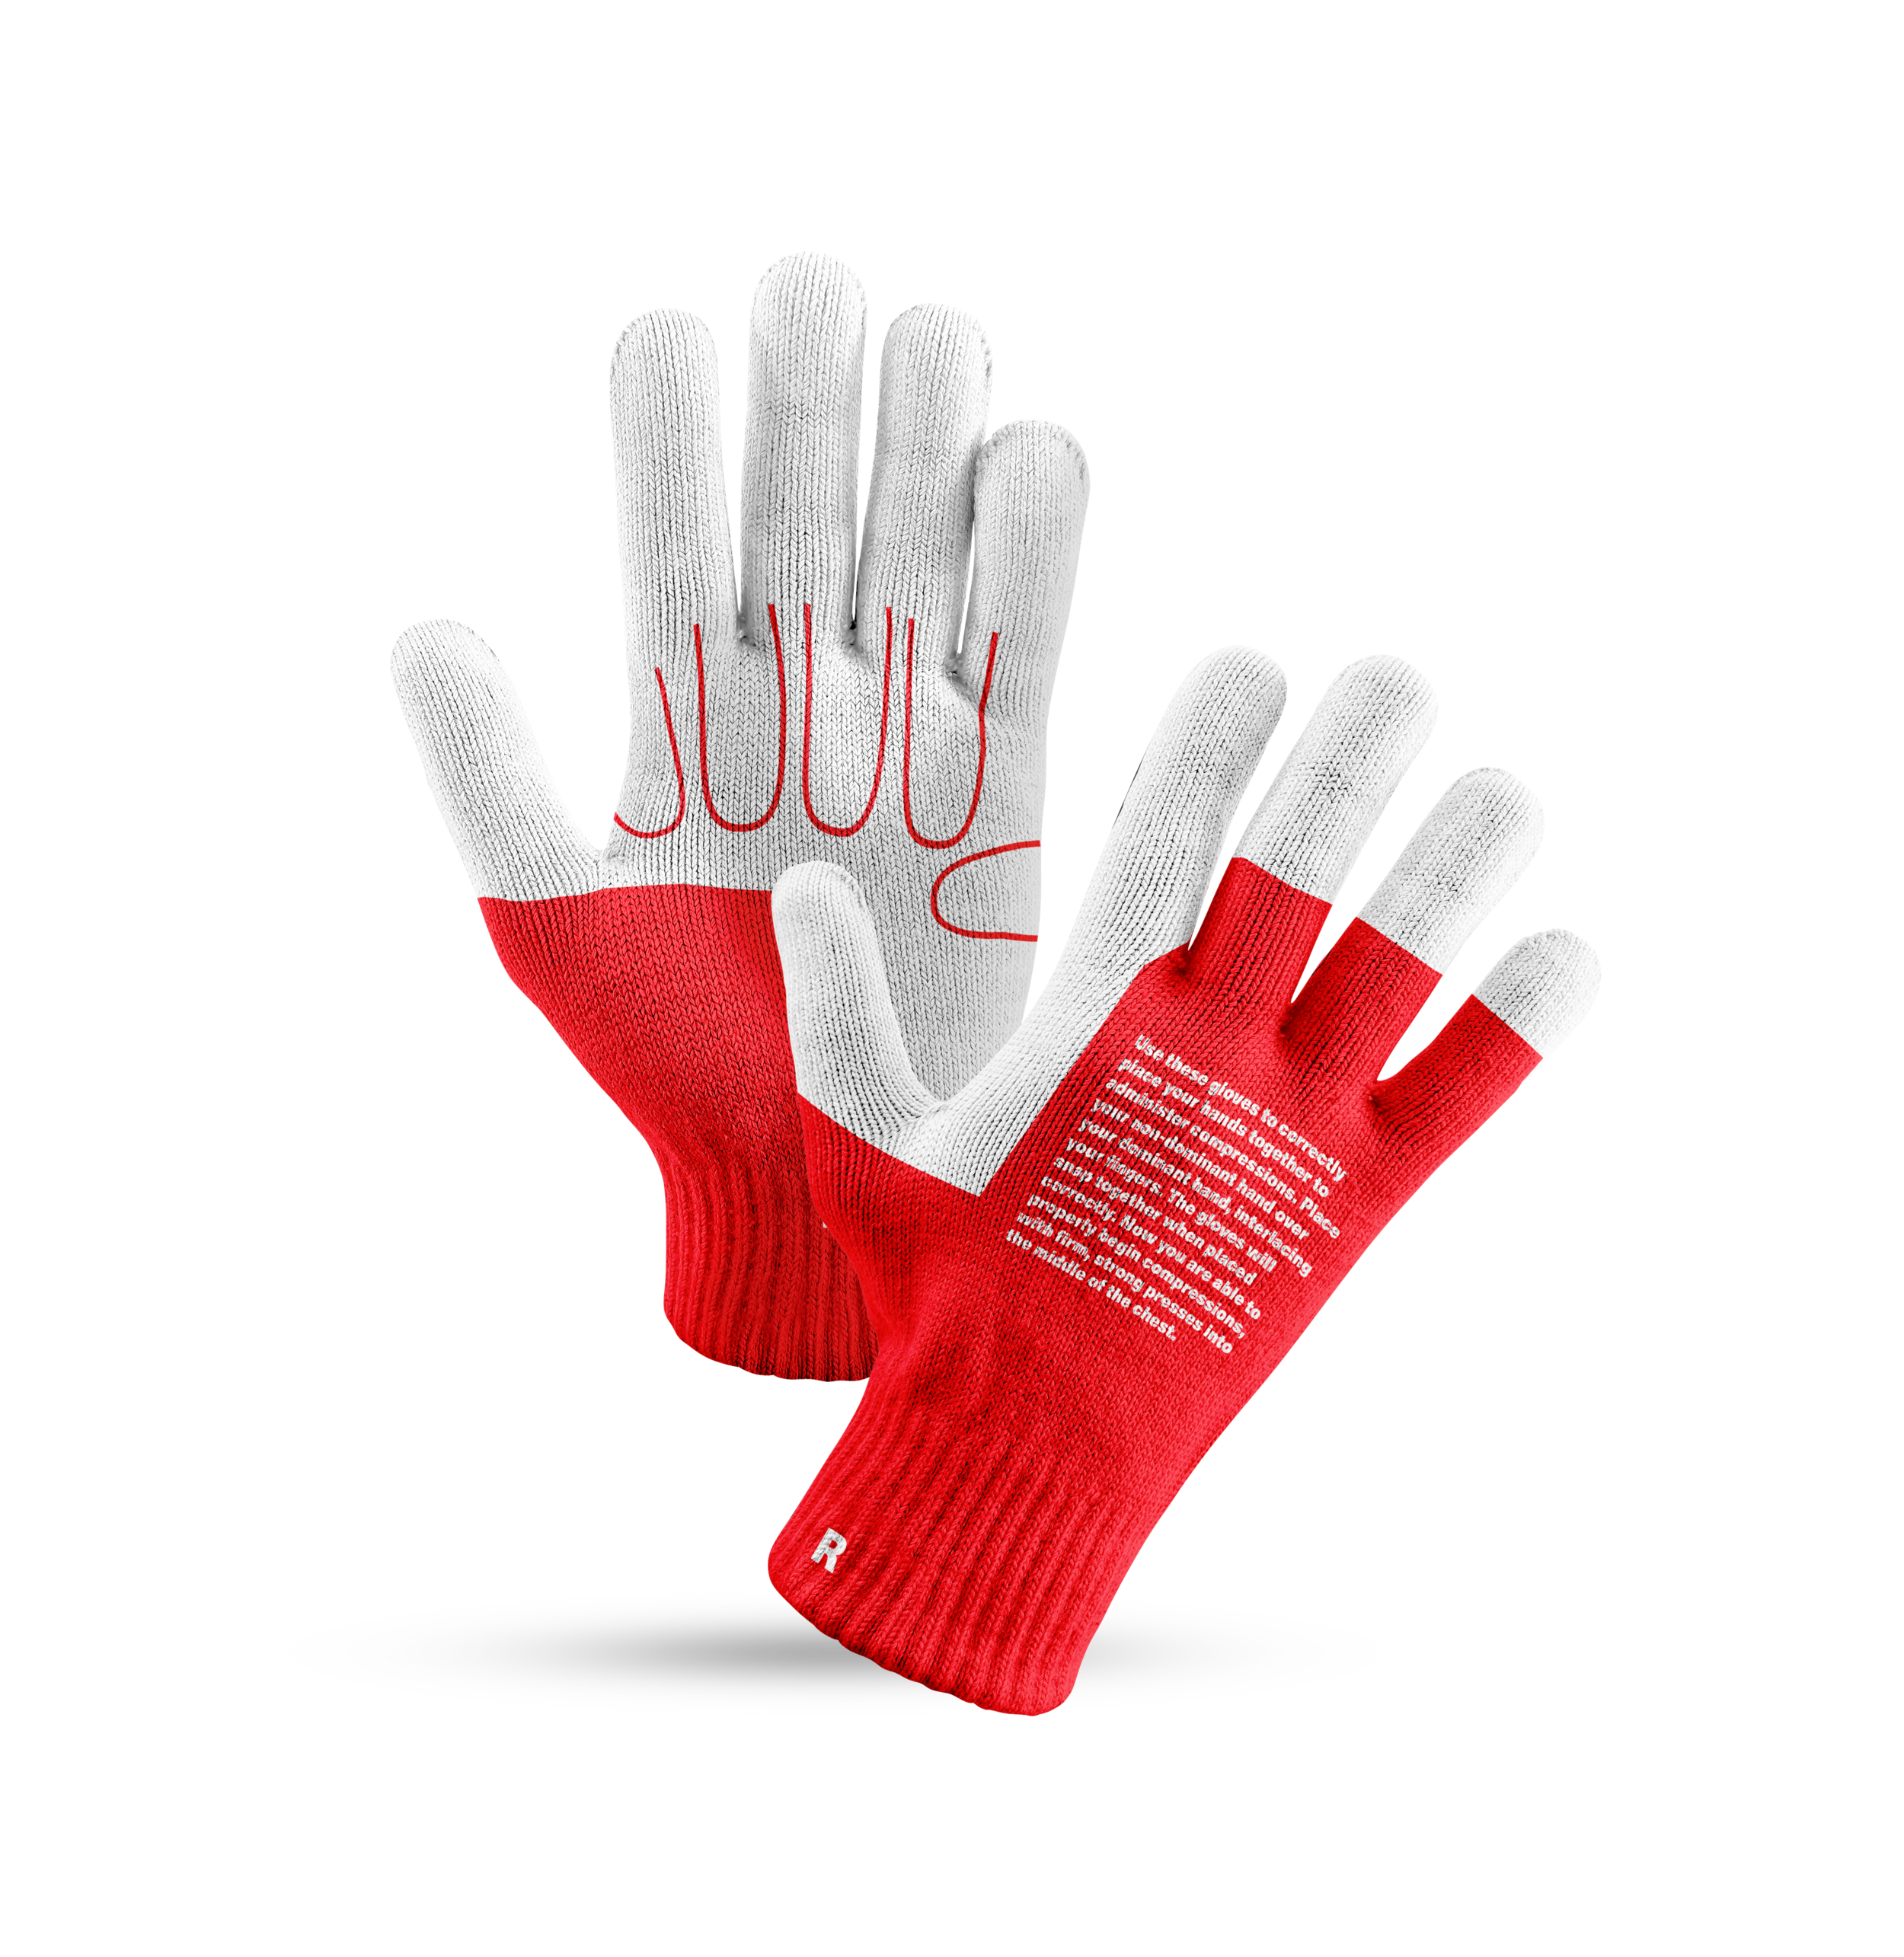 CPR Gardening Gloves. - These teach you the proper hand position for CPR and click when you've got it right.